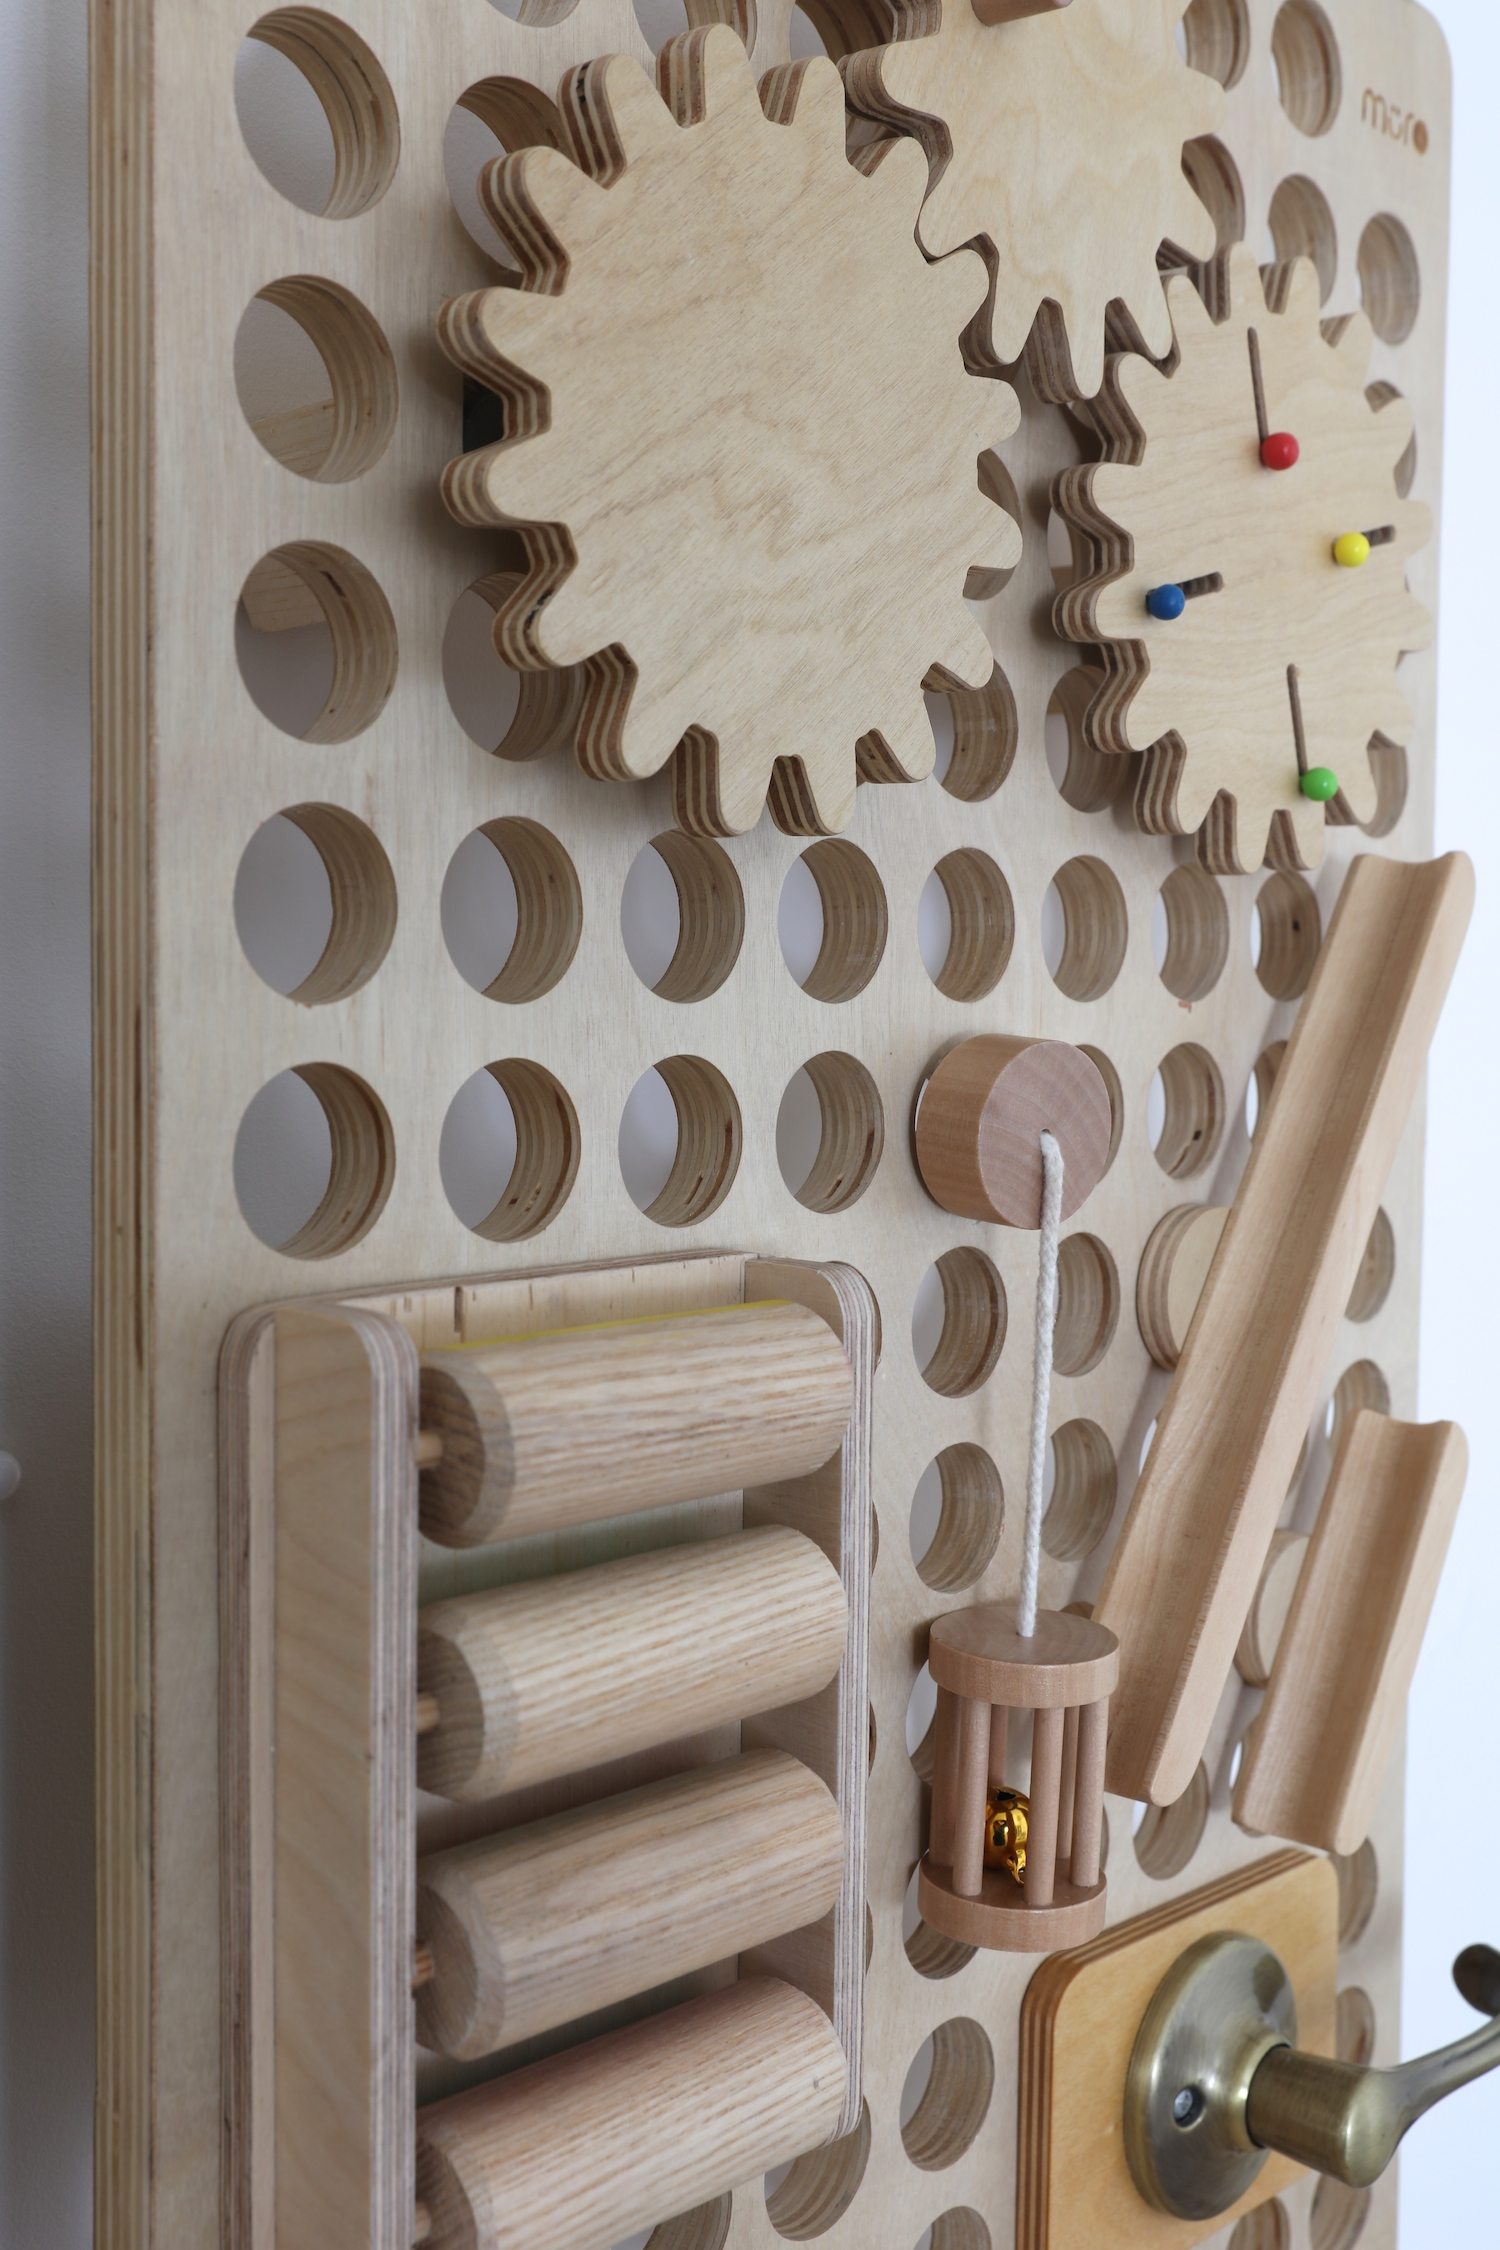 wooden_sensory_play_board_my_muro